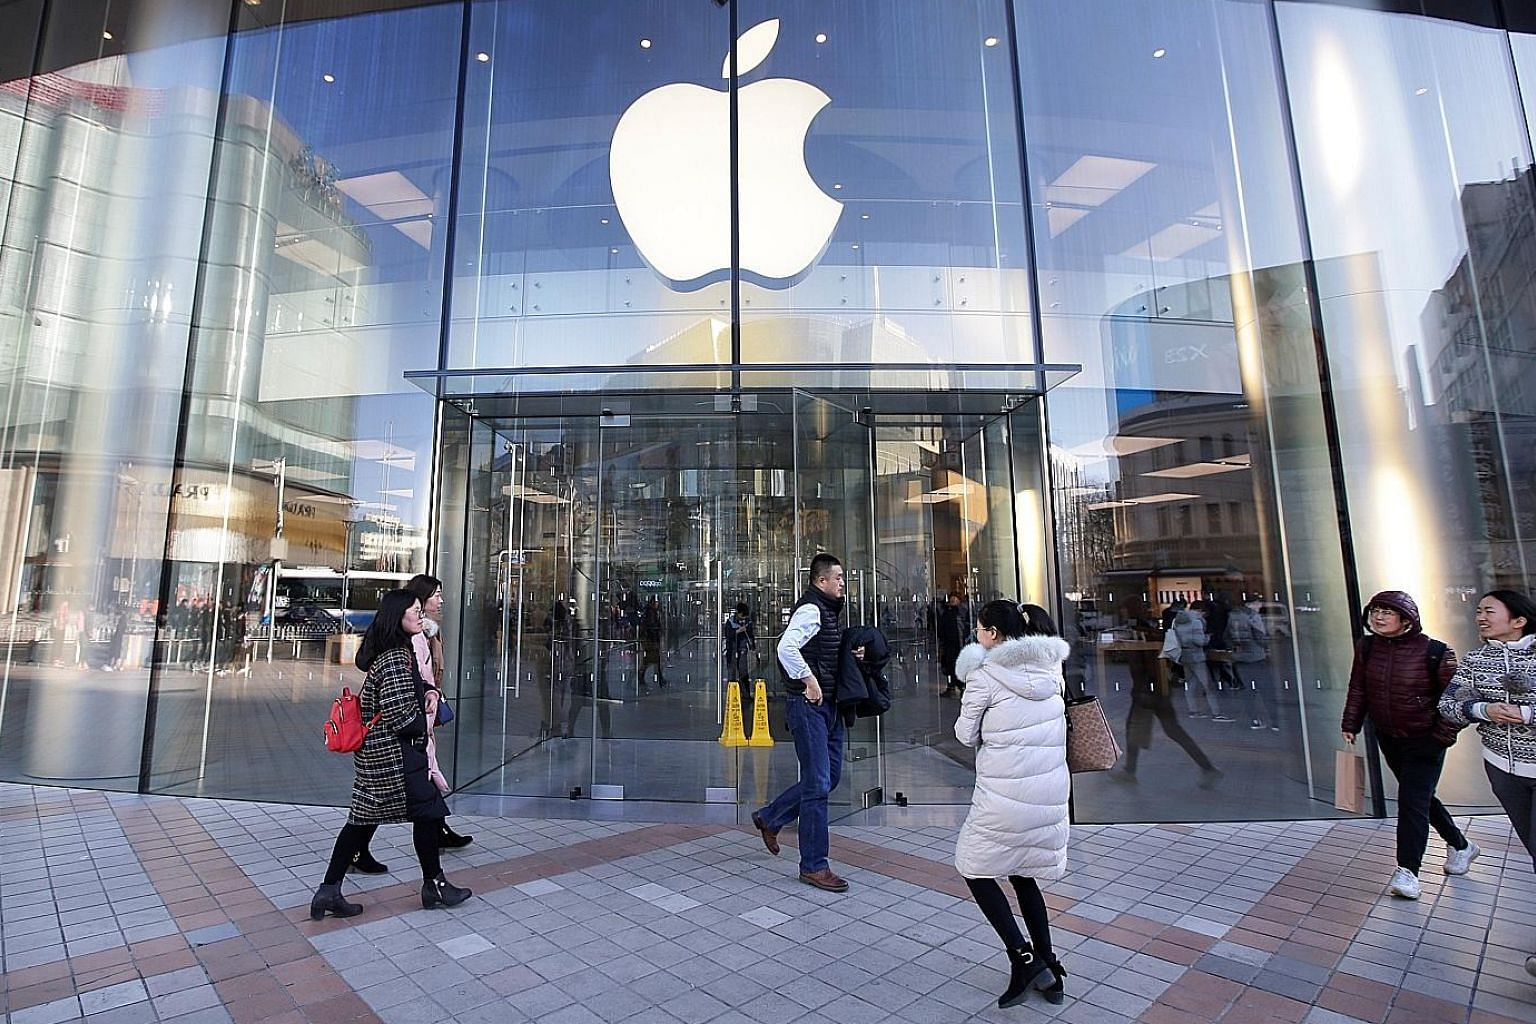 An Apple store in Beijing. While iPhones remain on store shelves pending a decision on Apple's appeal, a negative outcome could affect its sales in the Chinese market that generates about a fifth of its revenue, at a time demand for the firm's signat